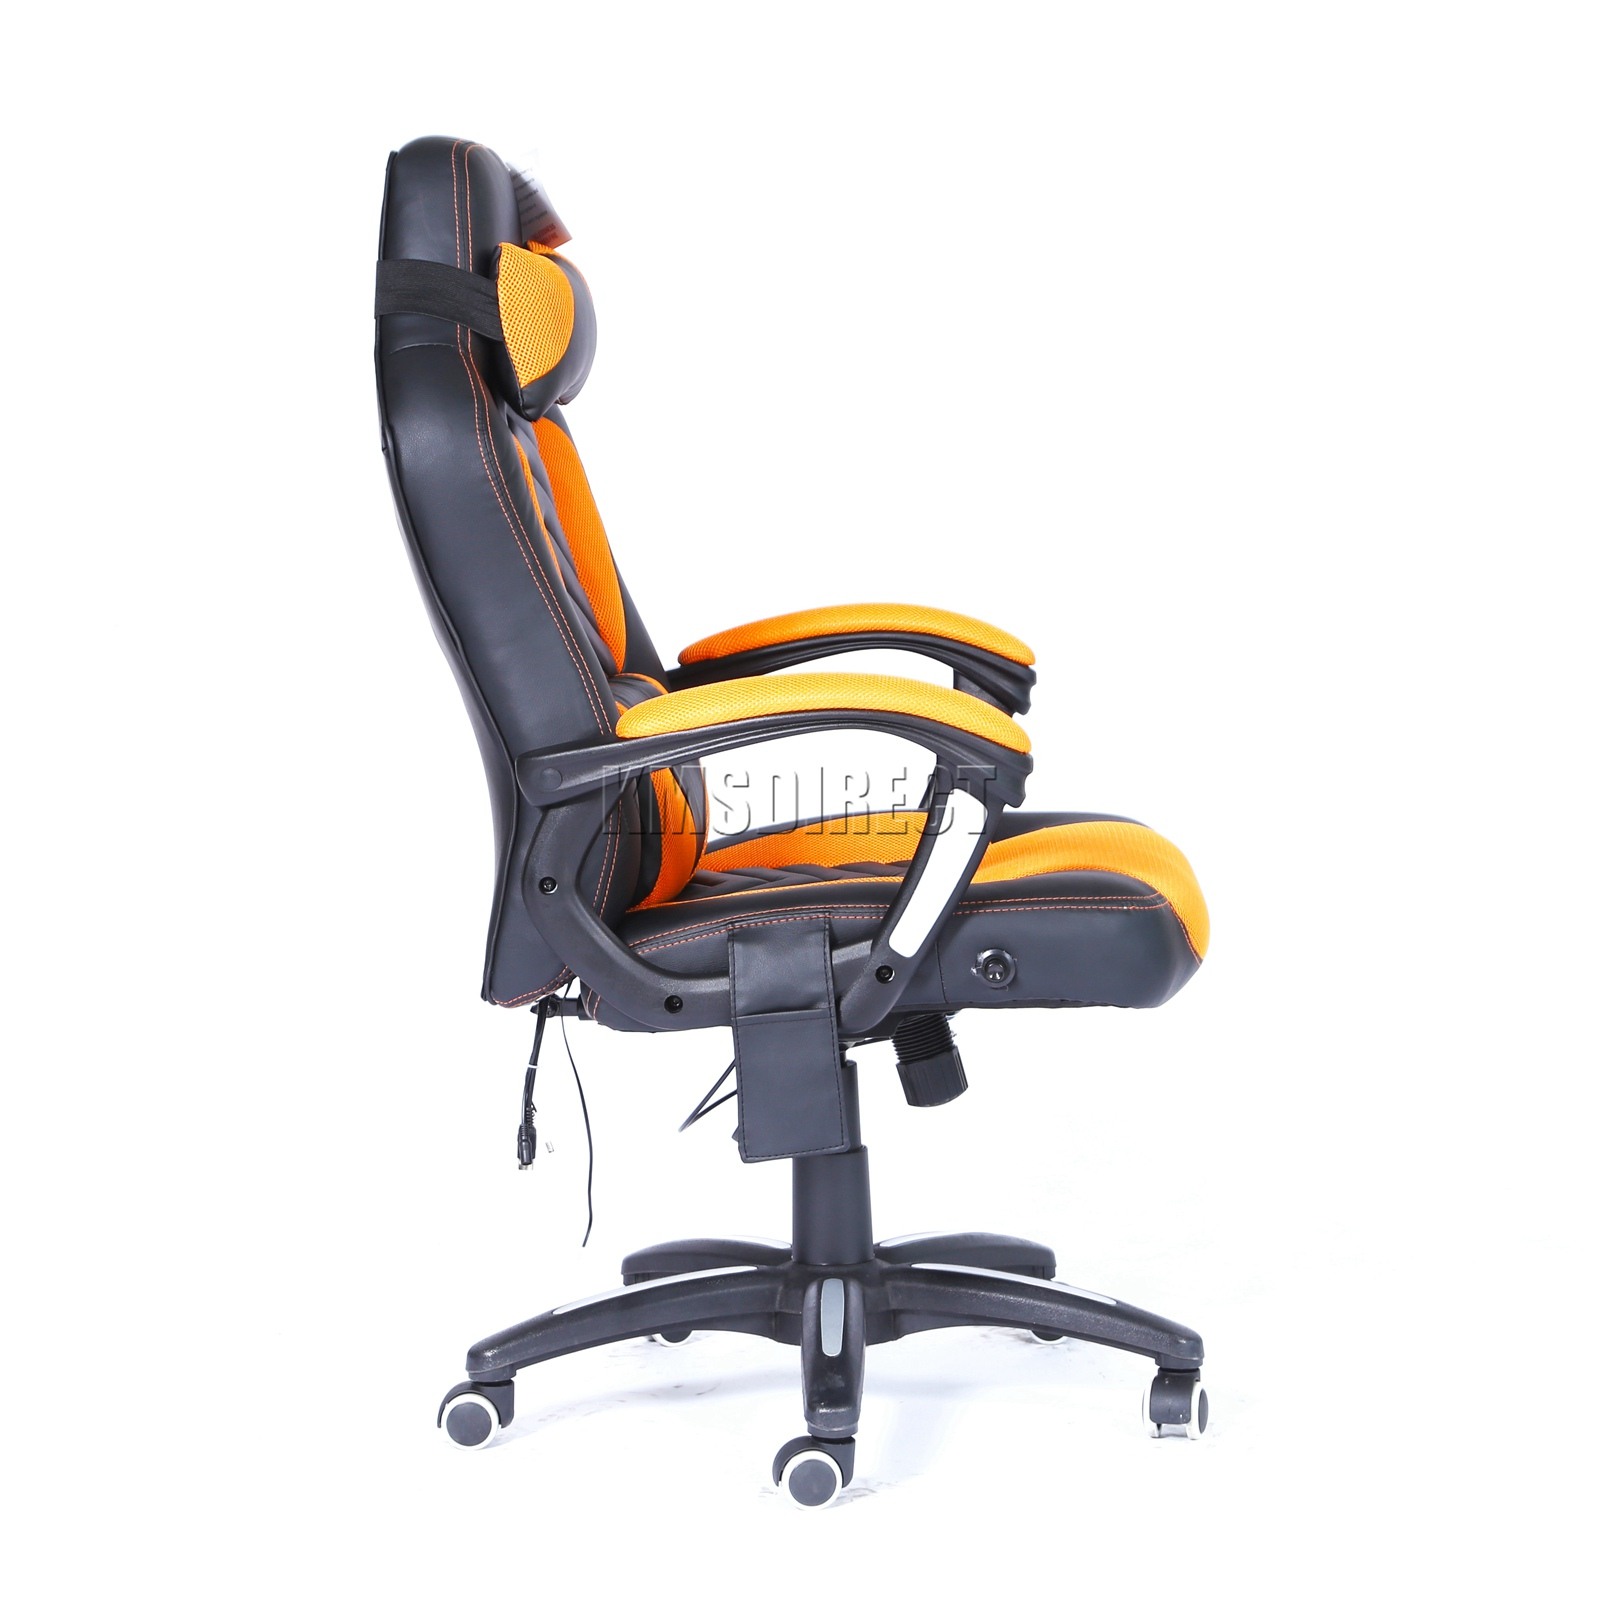 WestWood-Heated-Massage-Office-Chair-Gaming-amp-Computer-Recliner-Swivel-MC09 thumbnail 28